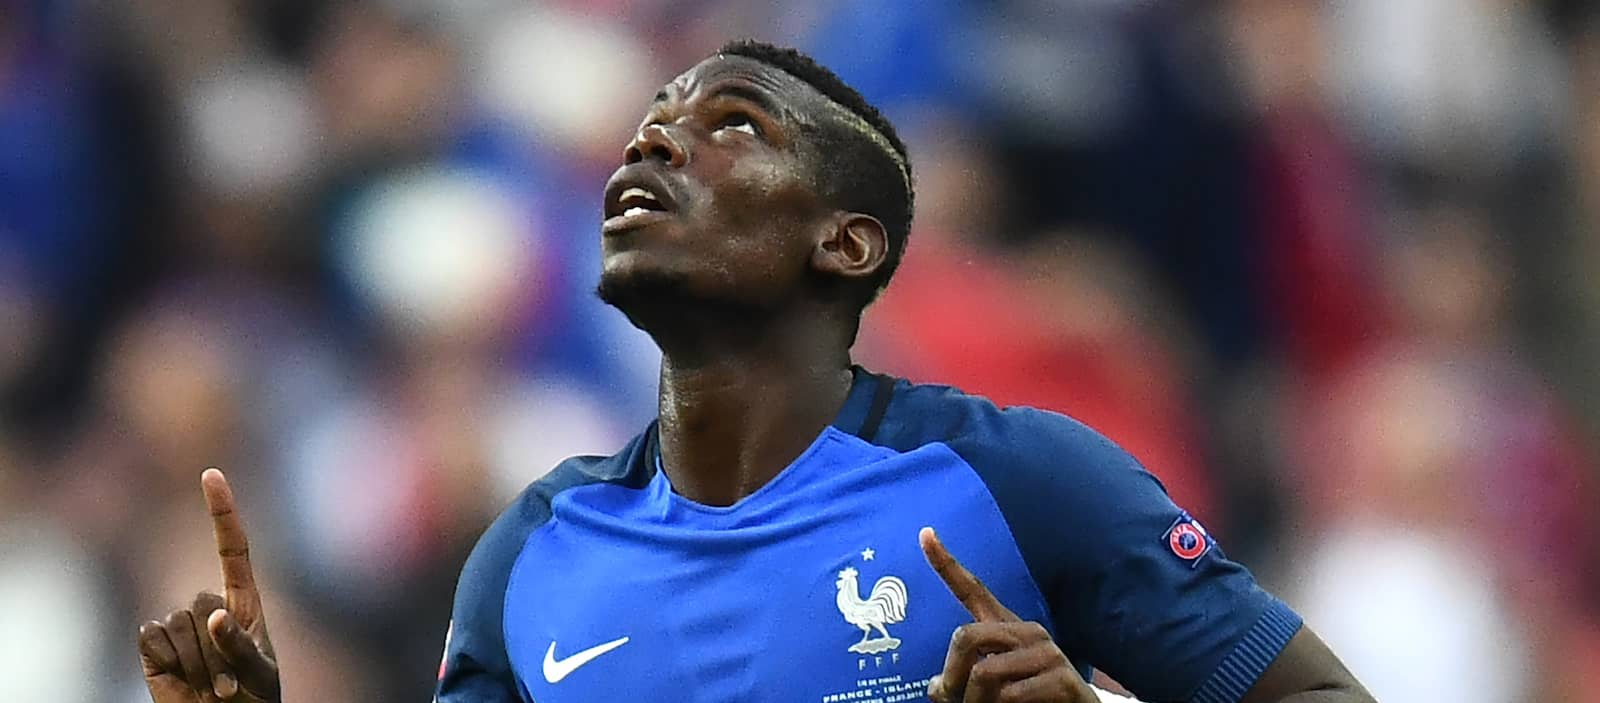 Robbie Fowler: Manchester United should not purchase Paul Pogba for £100m